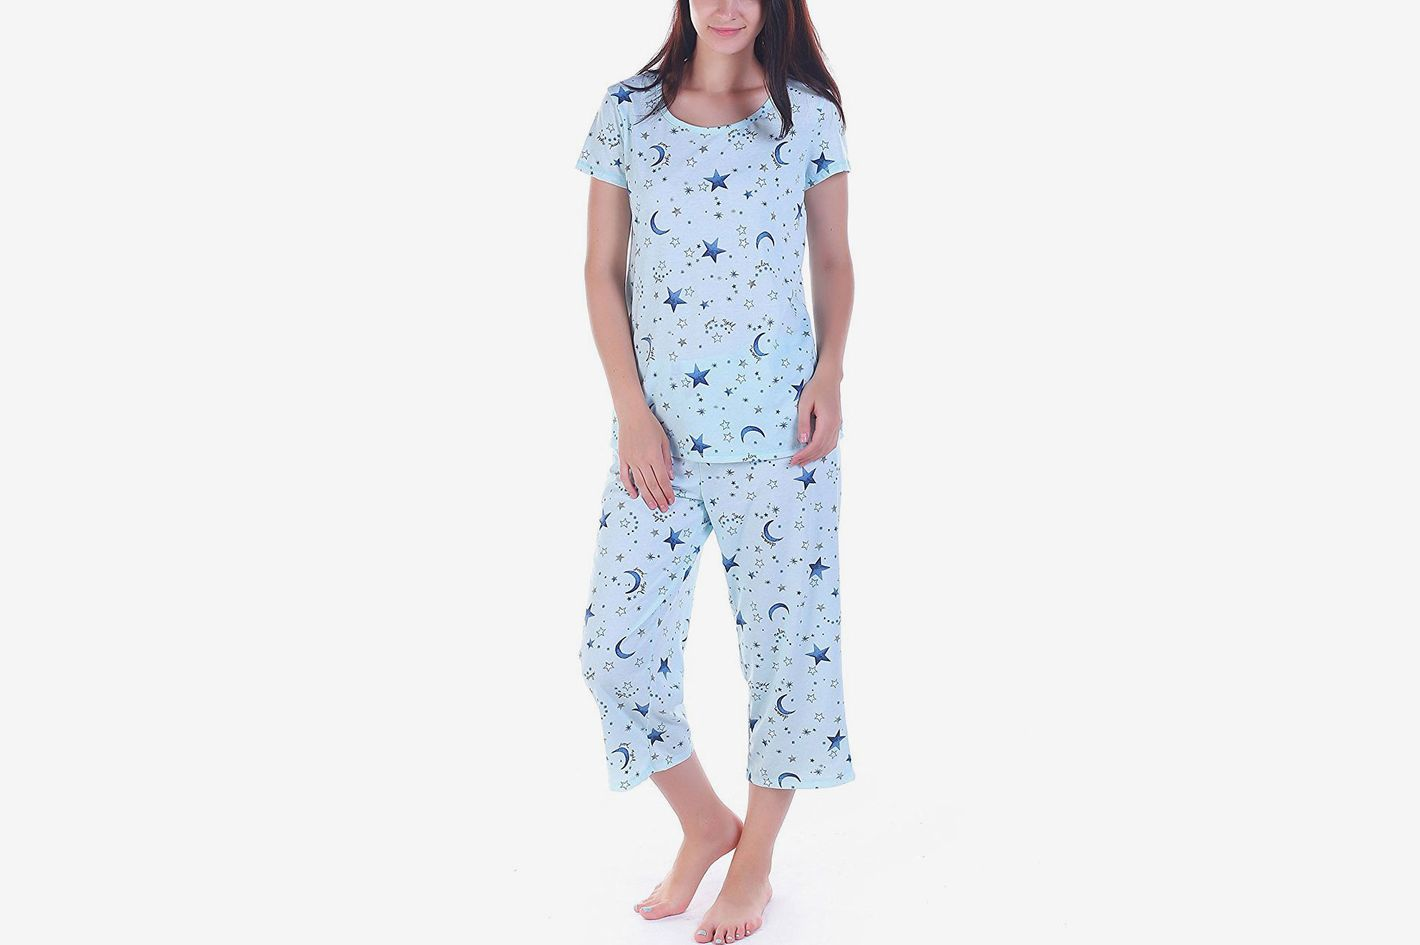 00ac5d62104 Best capri pajama set. Amoy madrola Women Cotton Sleepwear